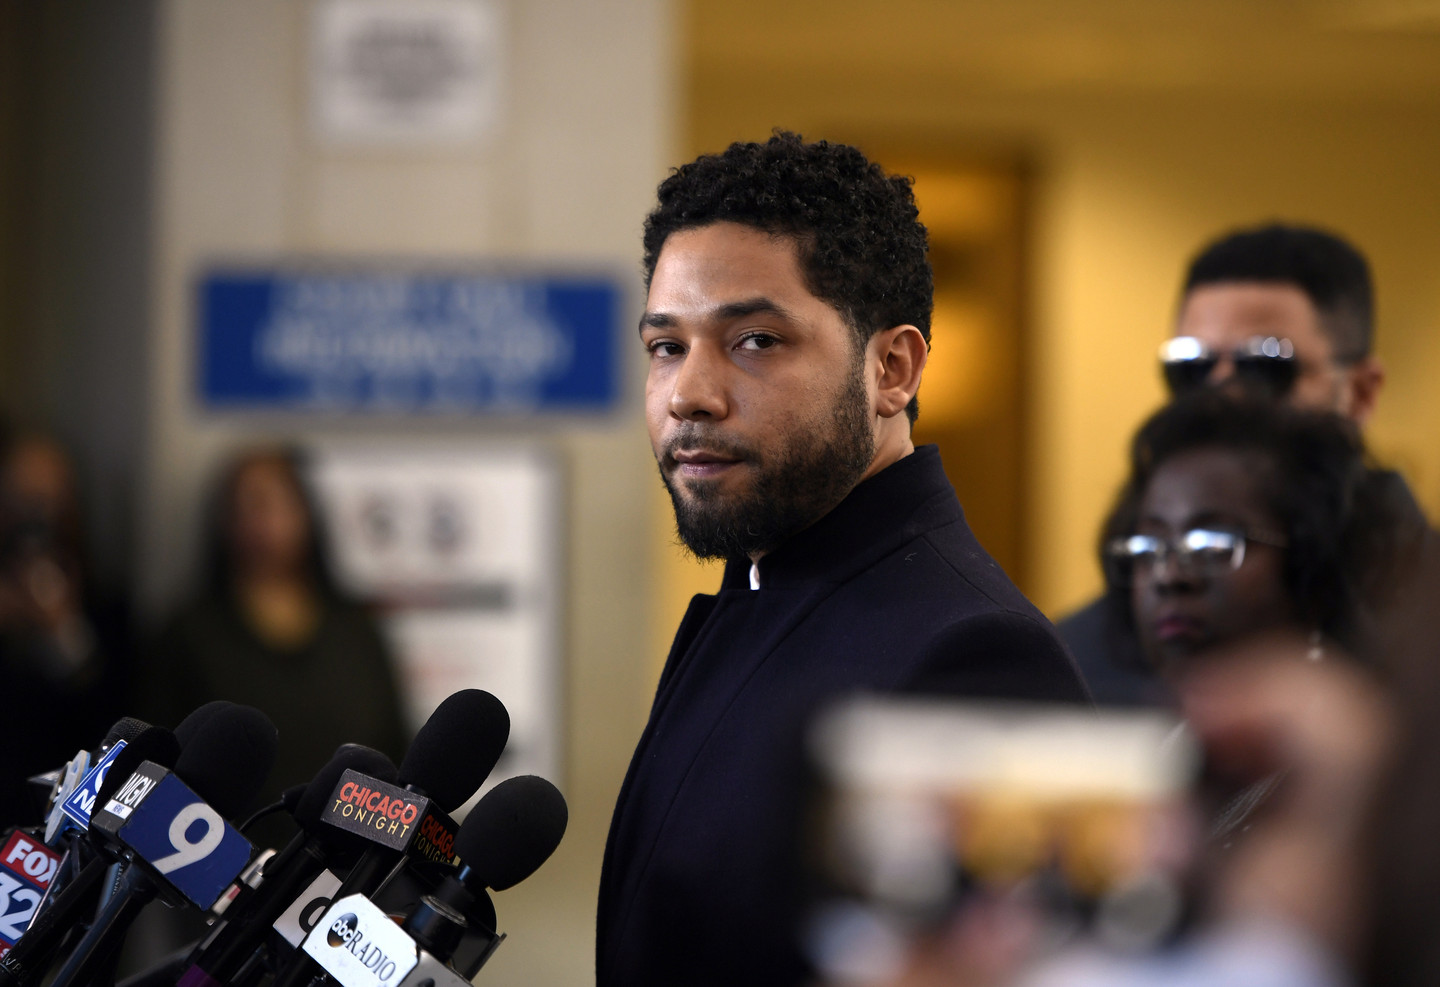 Trump 'Lynching' Mentions Outpace Those of Smollett Case